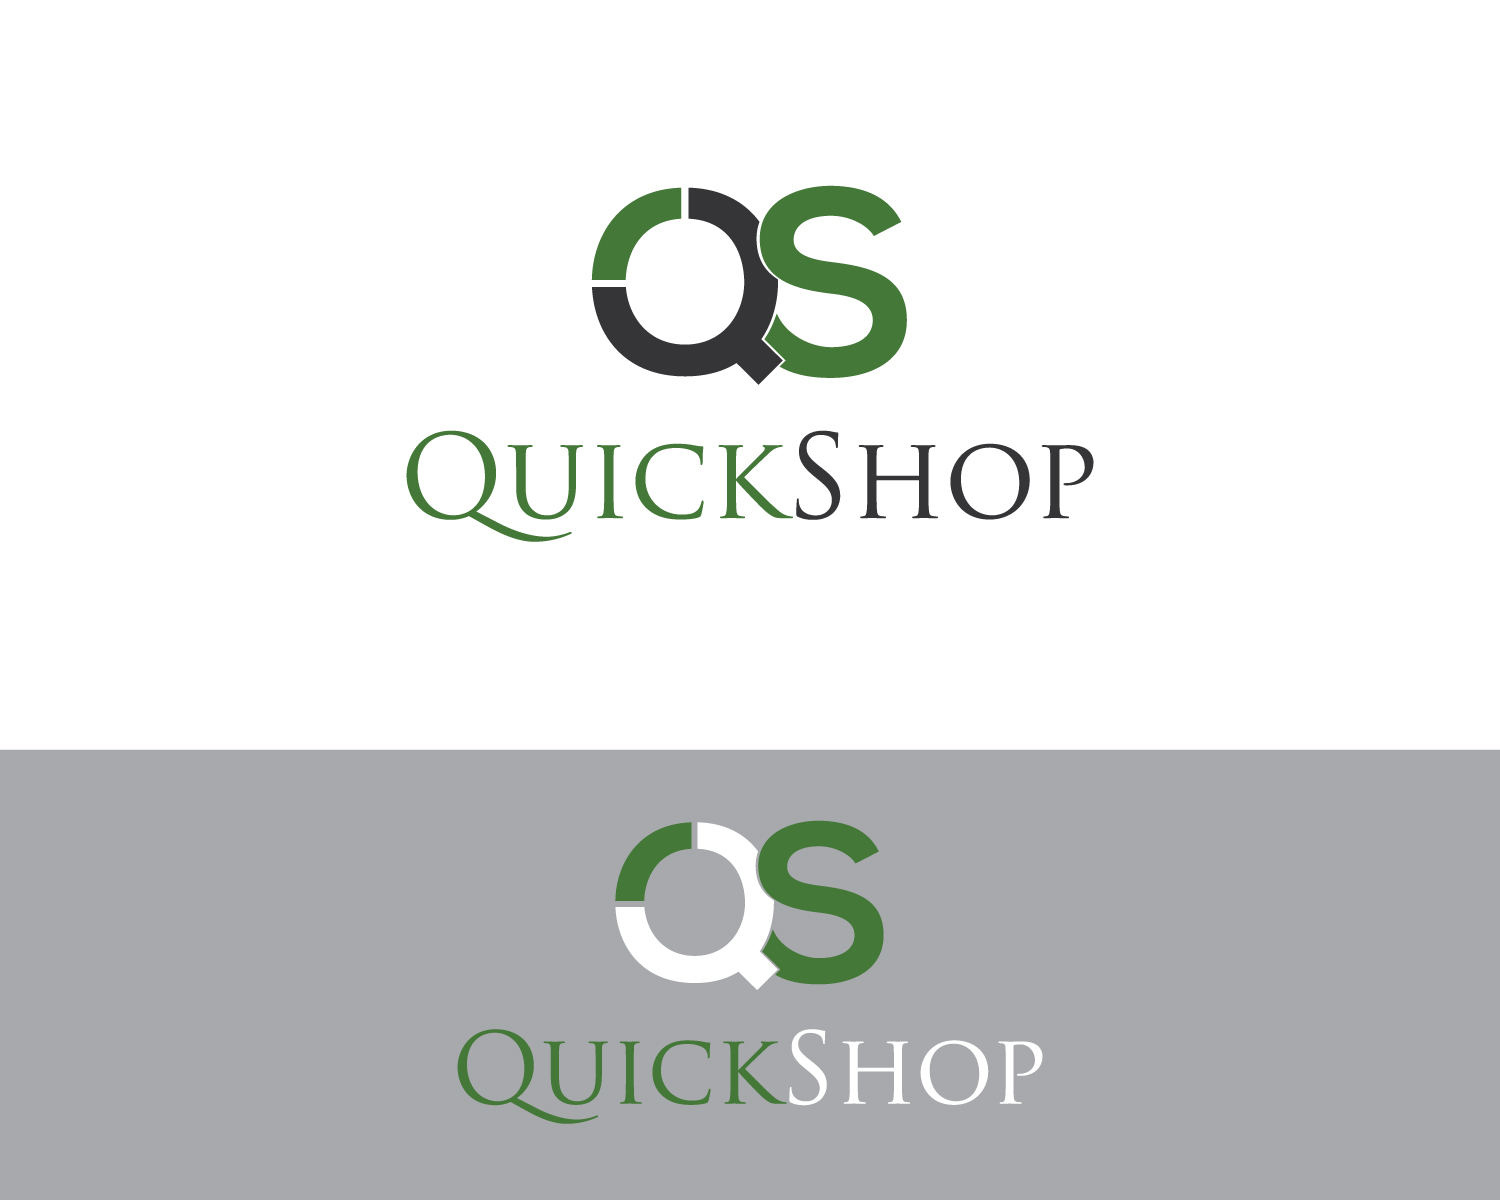 Design Online Shop Upmarket Bold Online Shopping Logo Design For Quick Shop Or